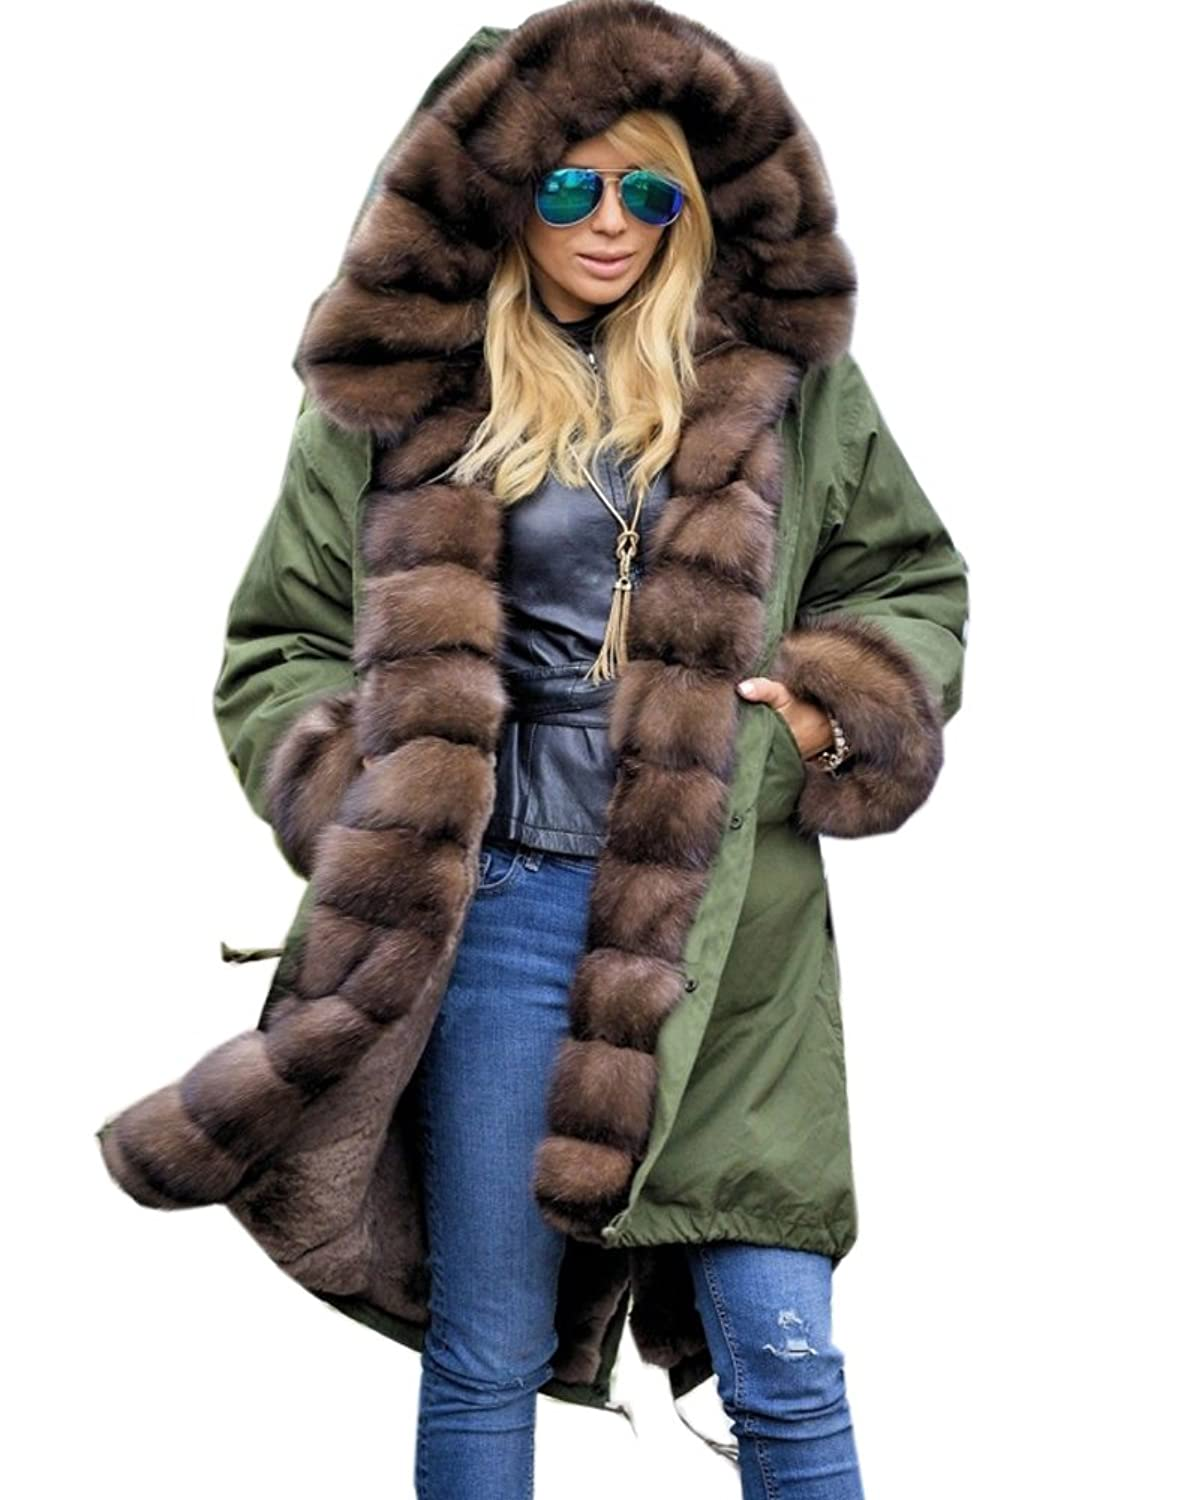 Amazon.com: Roiii Ladies Quilted Casual Vintage Faux Fur Collar ... : quilted ladies coat - Adamdwight.com